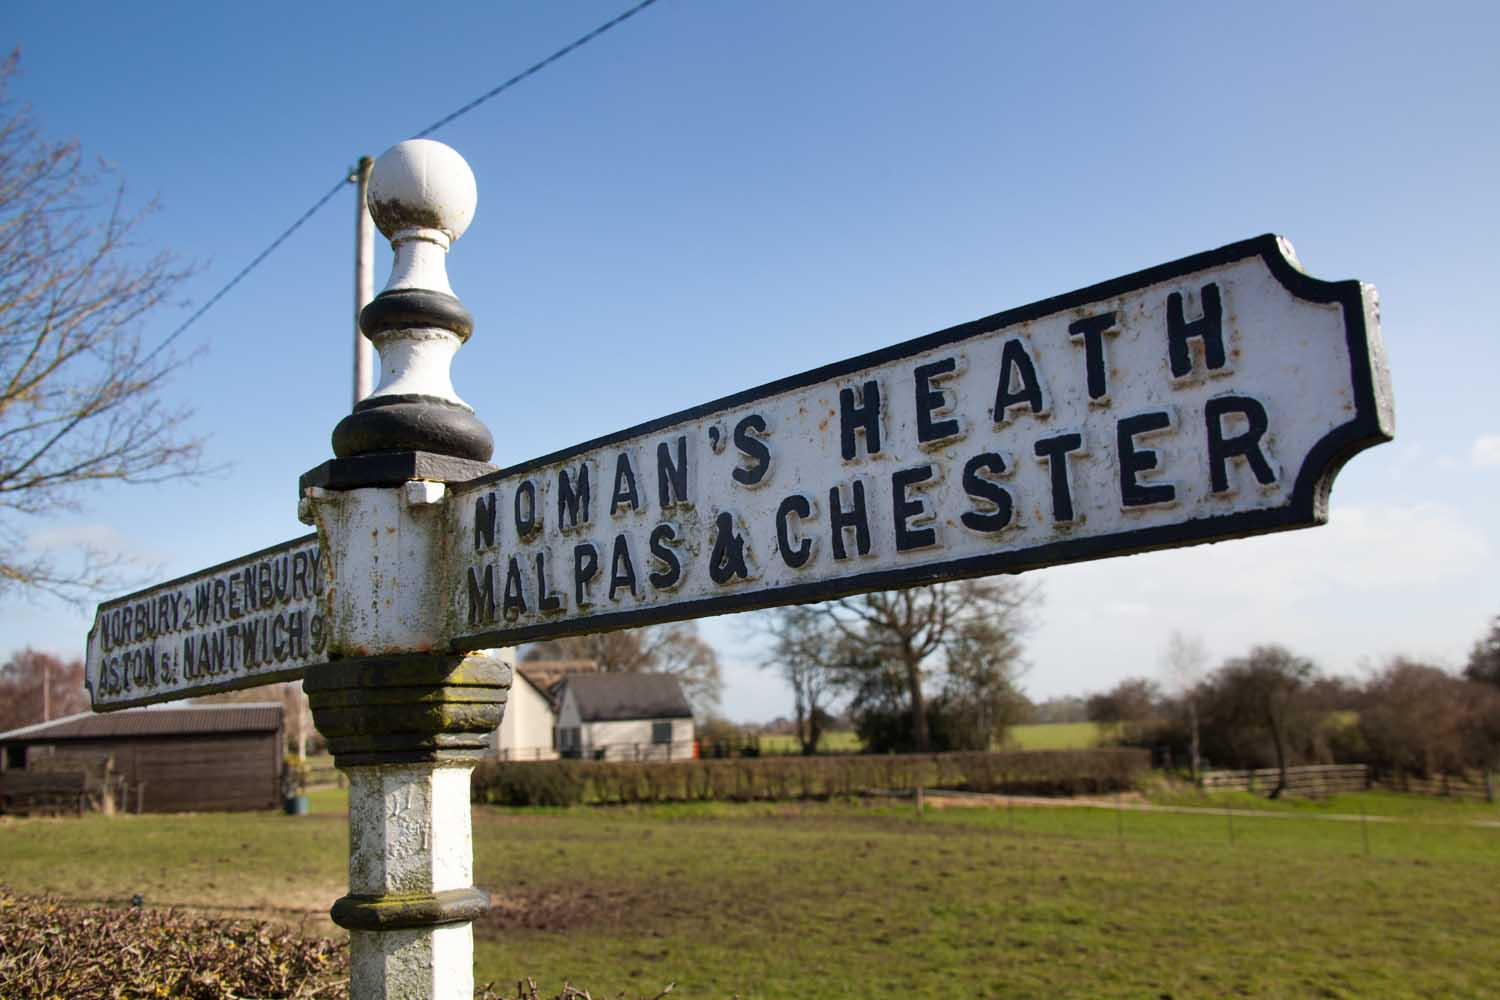 Picturesque view of an old style road sign at Bickley's Bickley Lane.